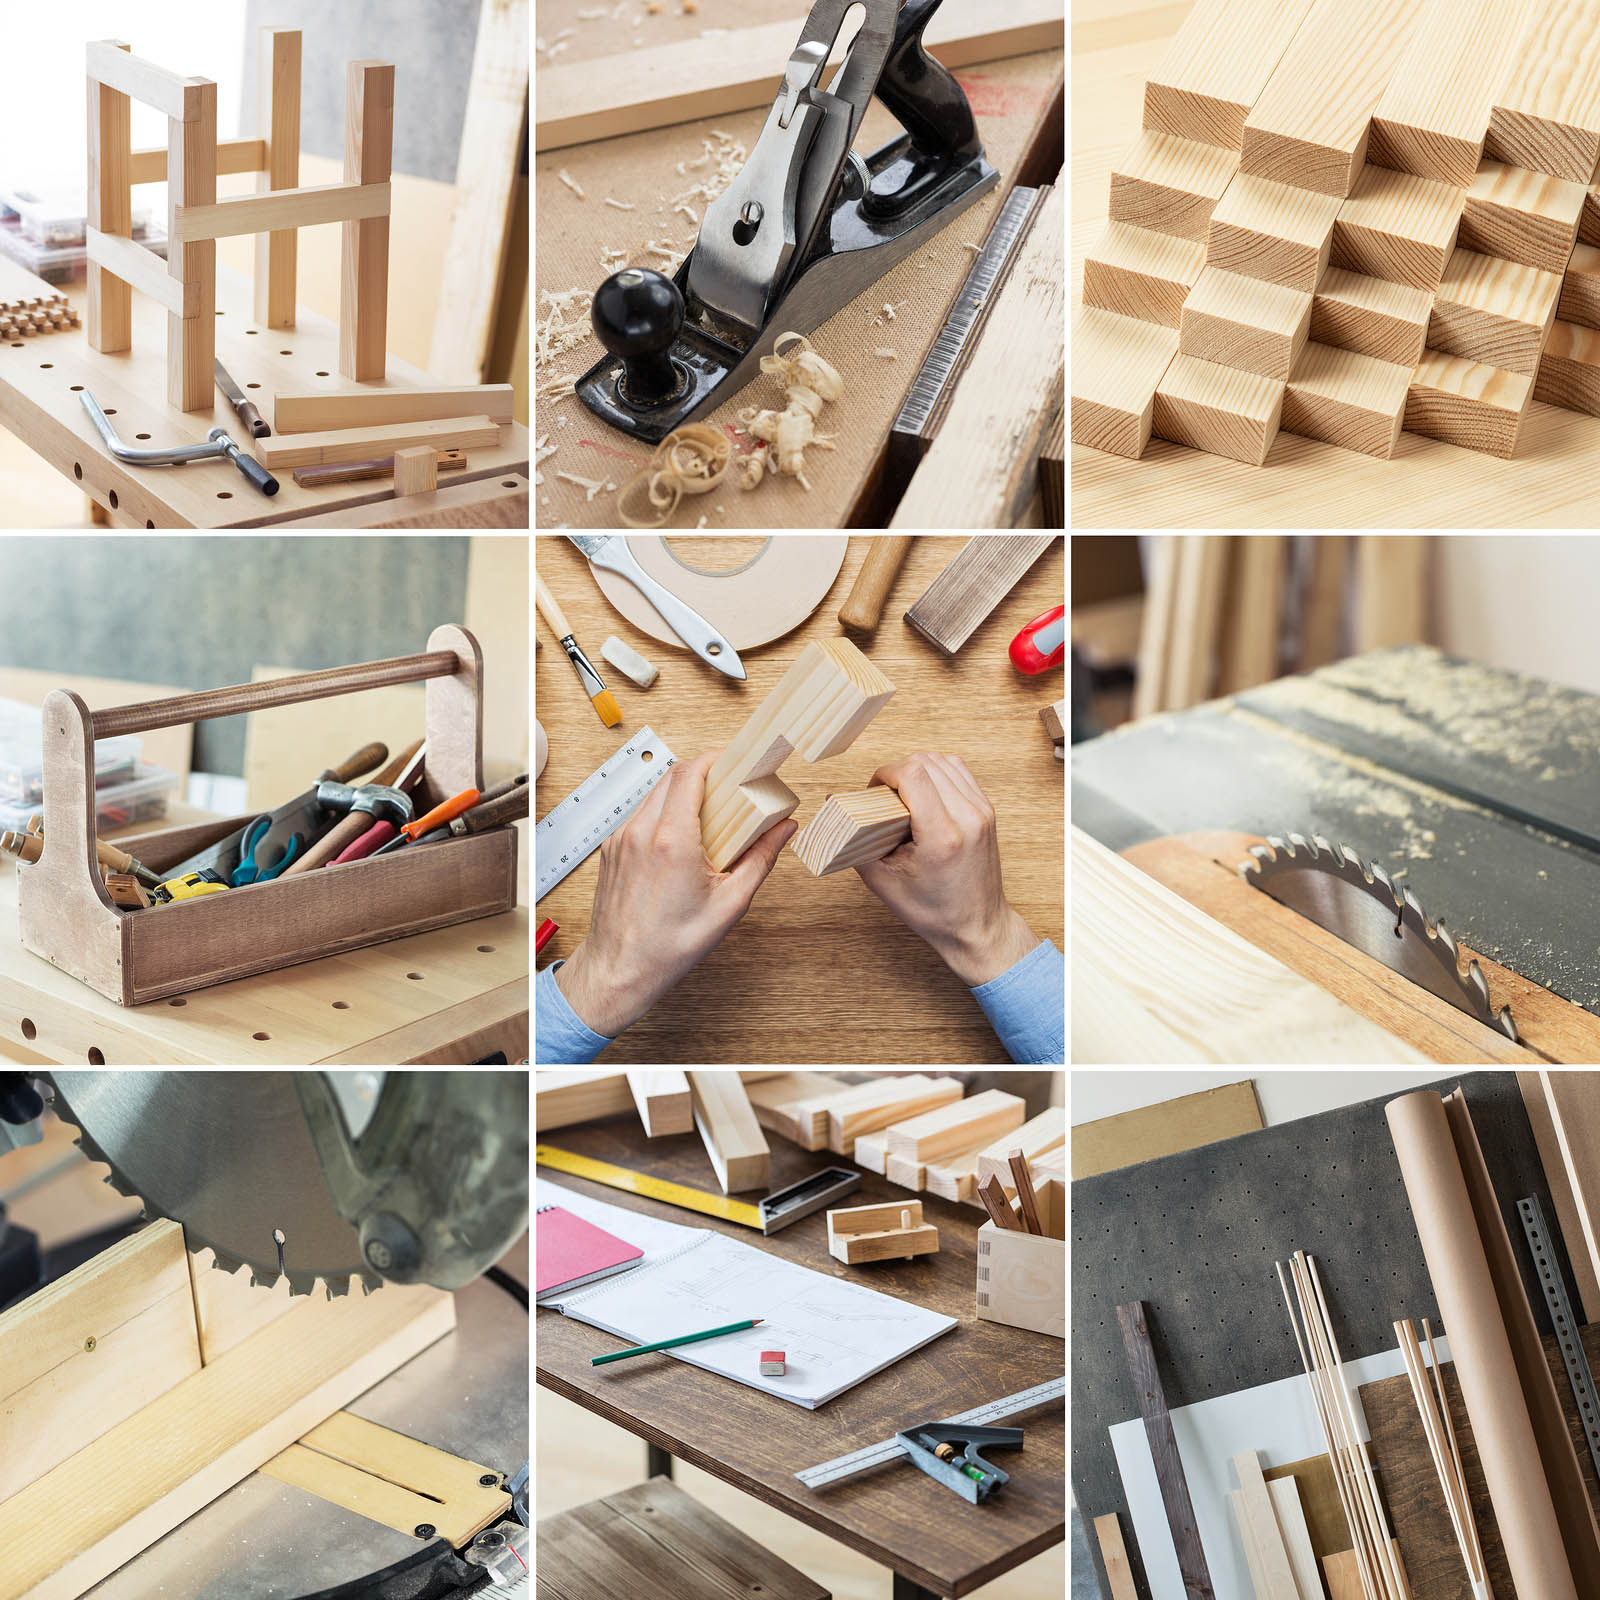 South London Carpenters - Carpentry Services